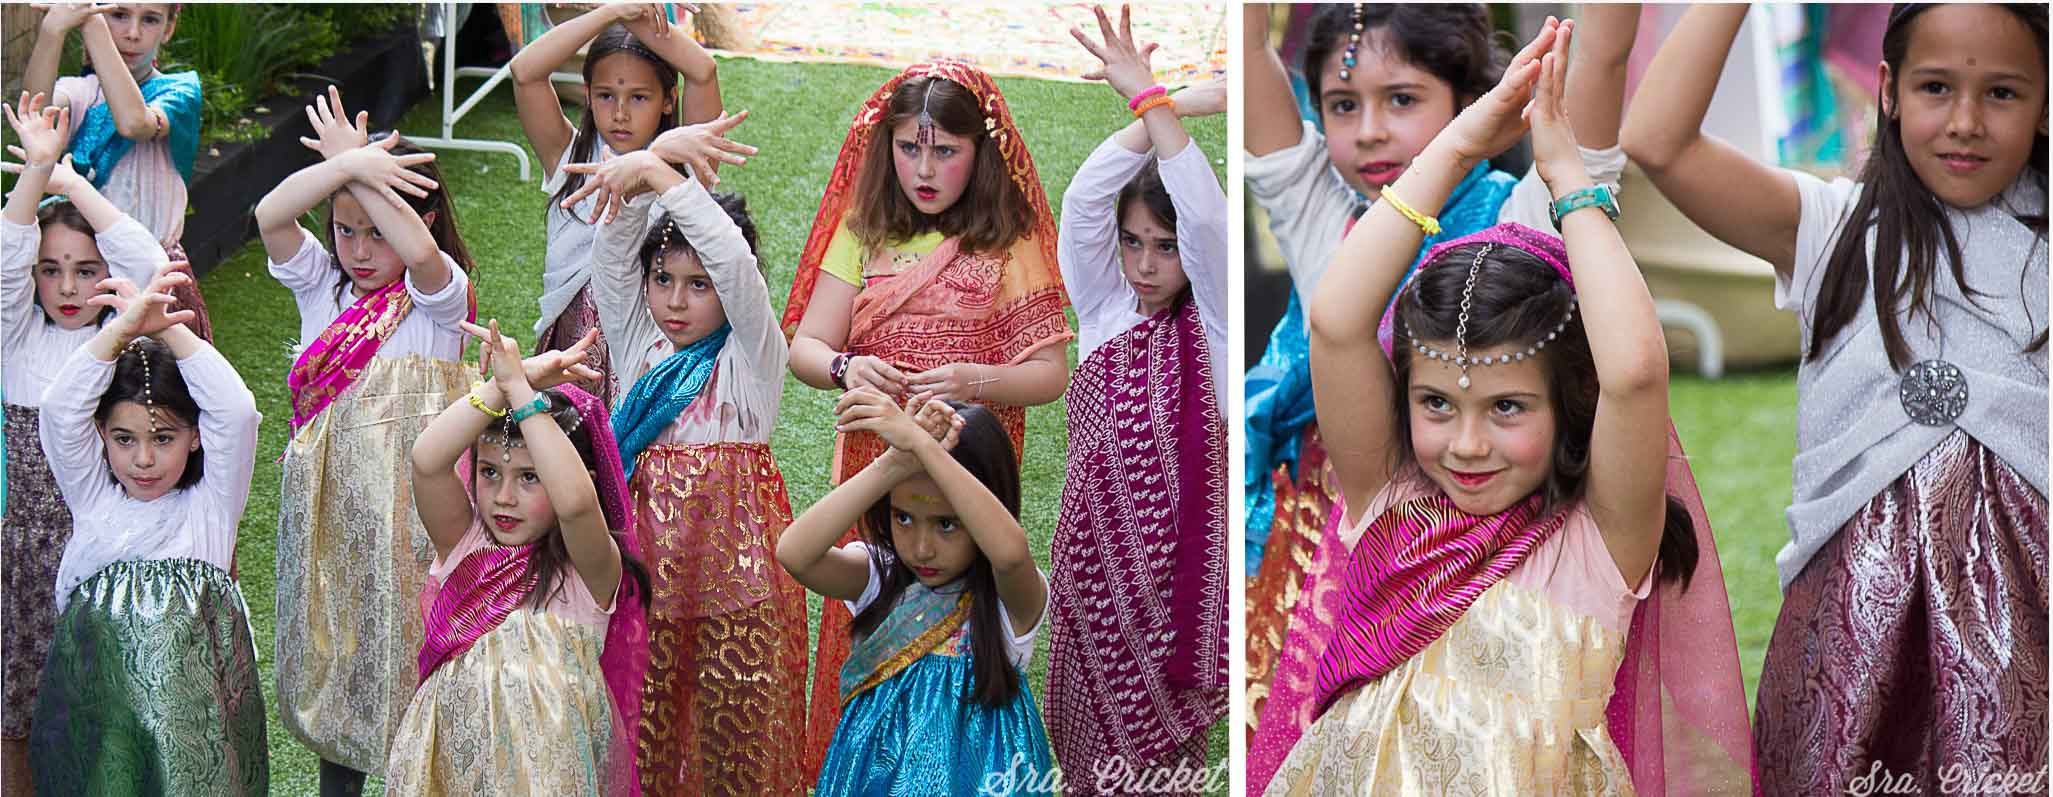 fiesta bollywood party infantil